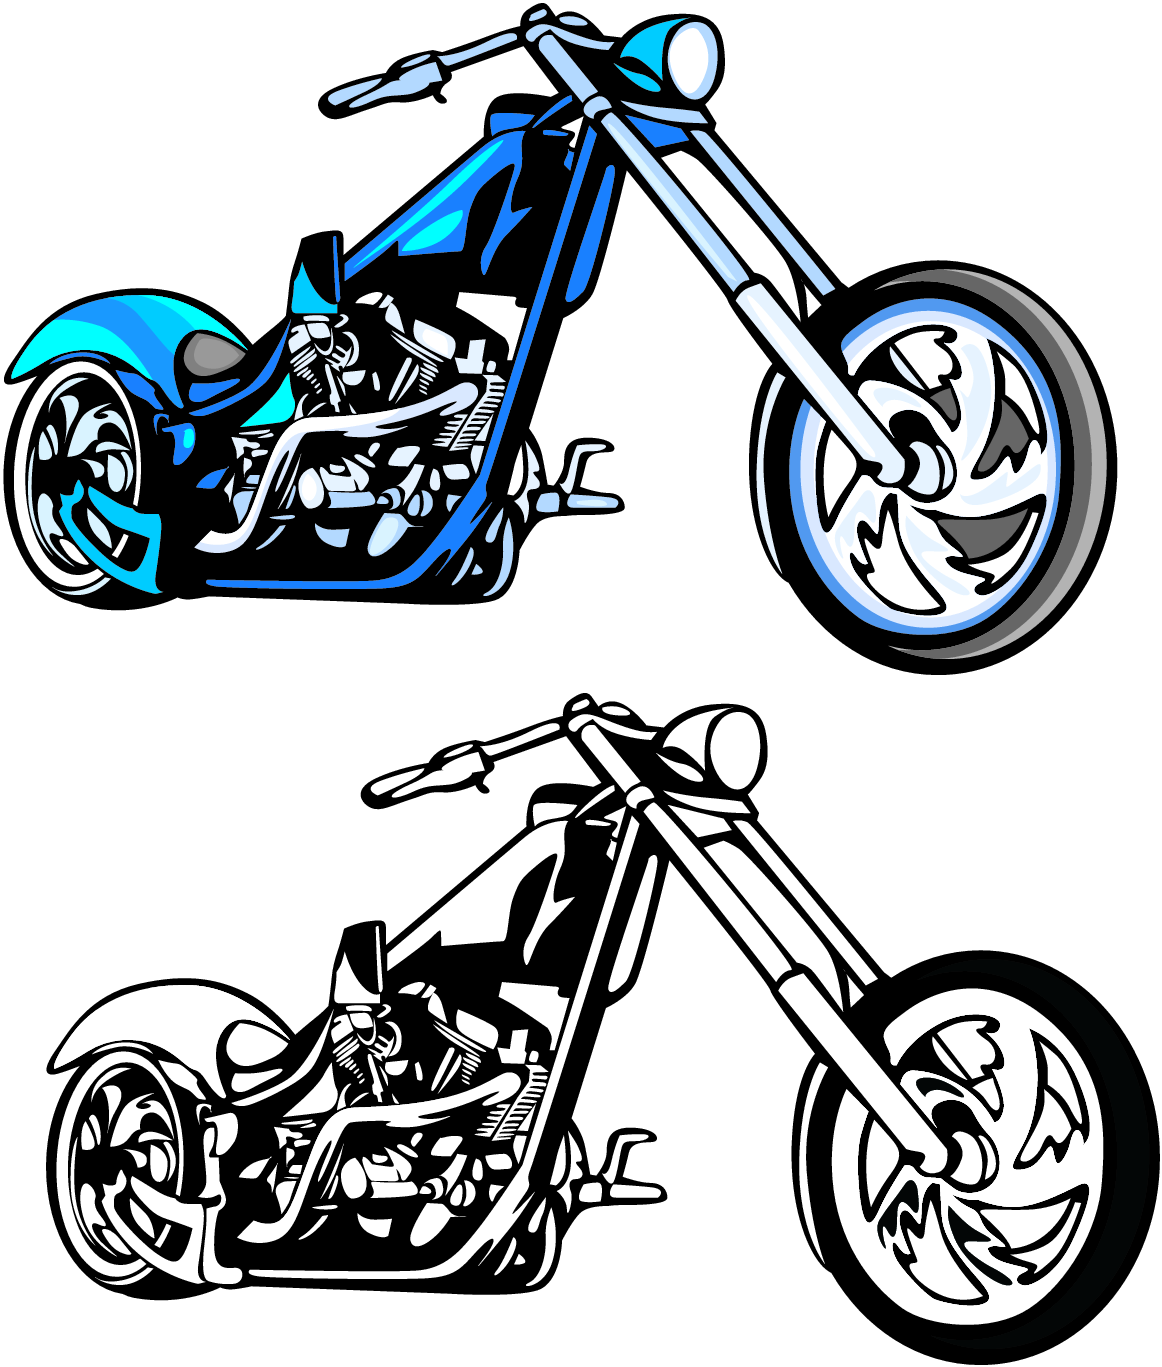 Motorcycle clipart batman. Free images motorcycles download